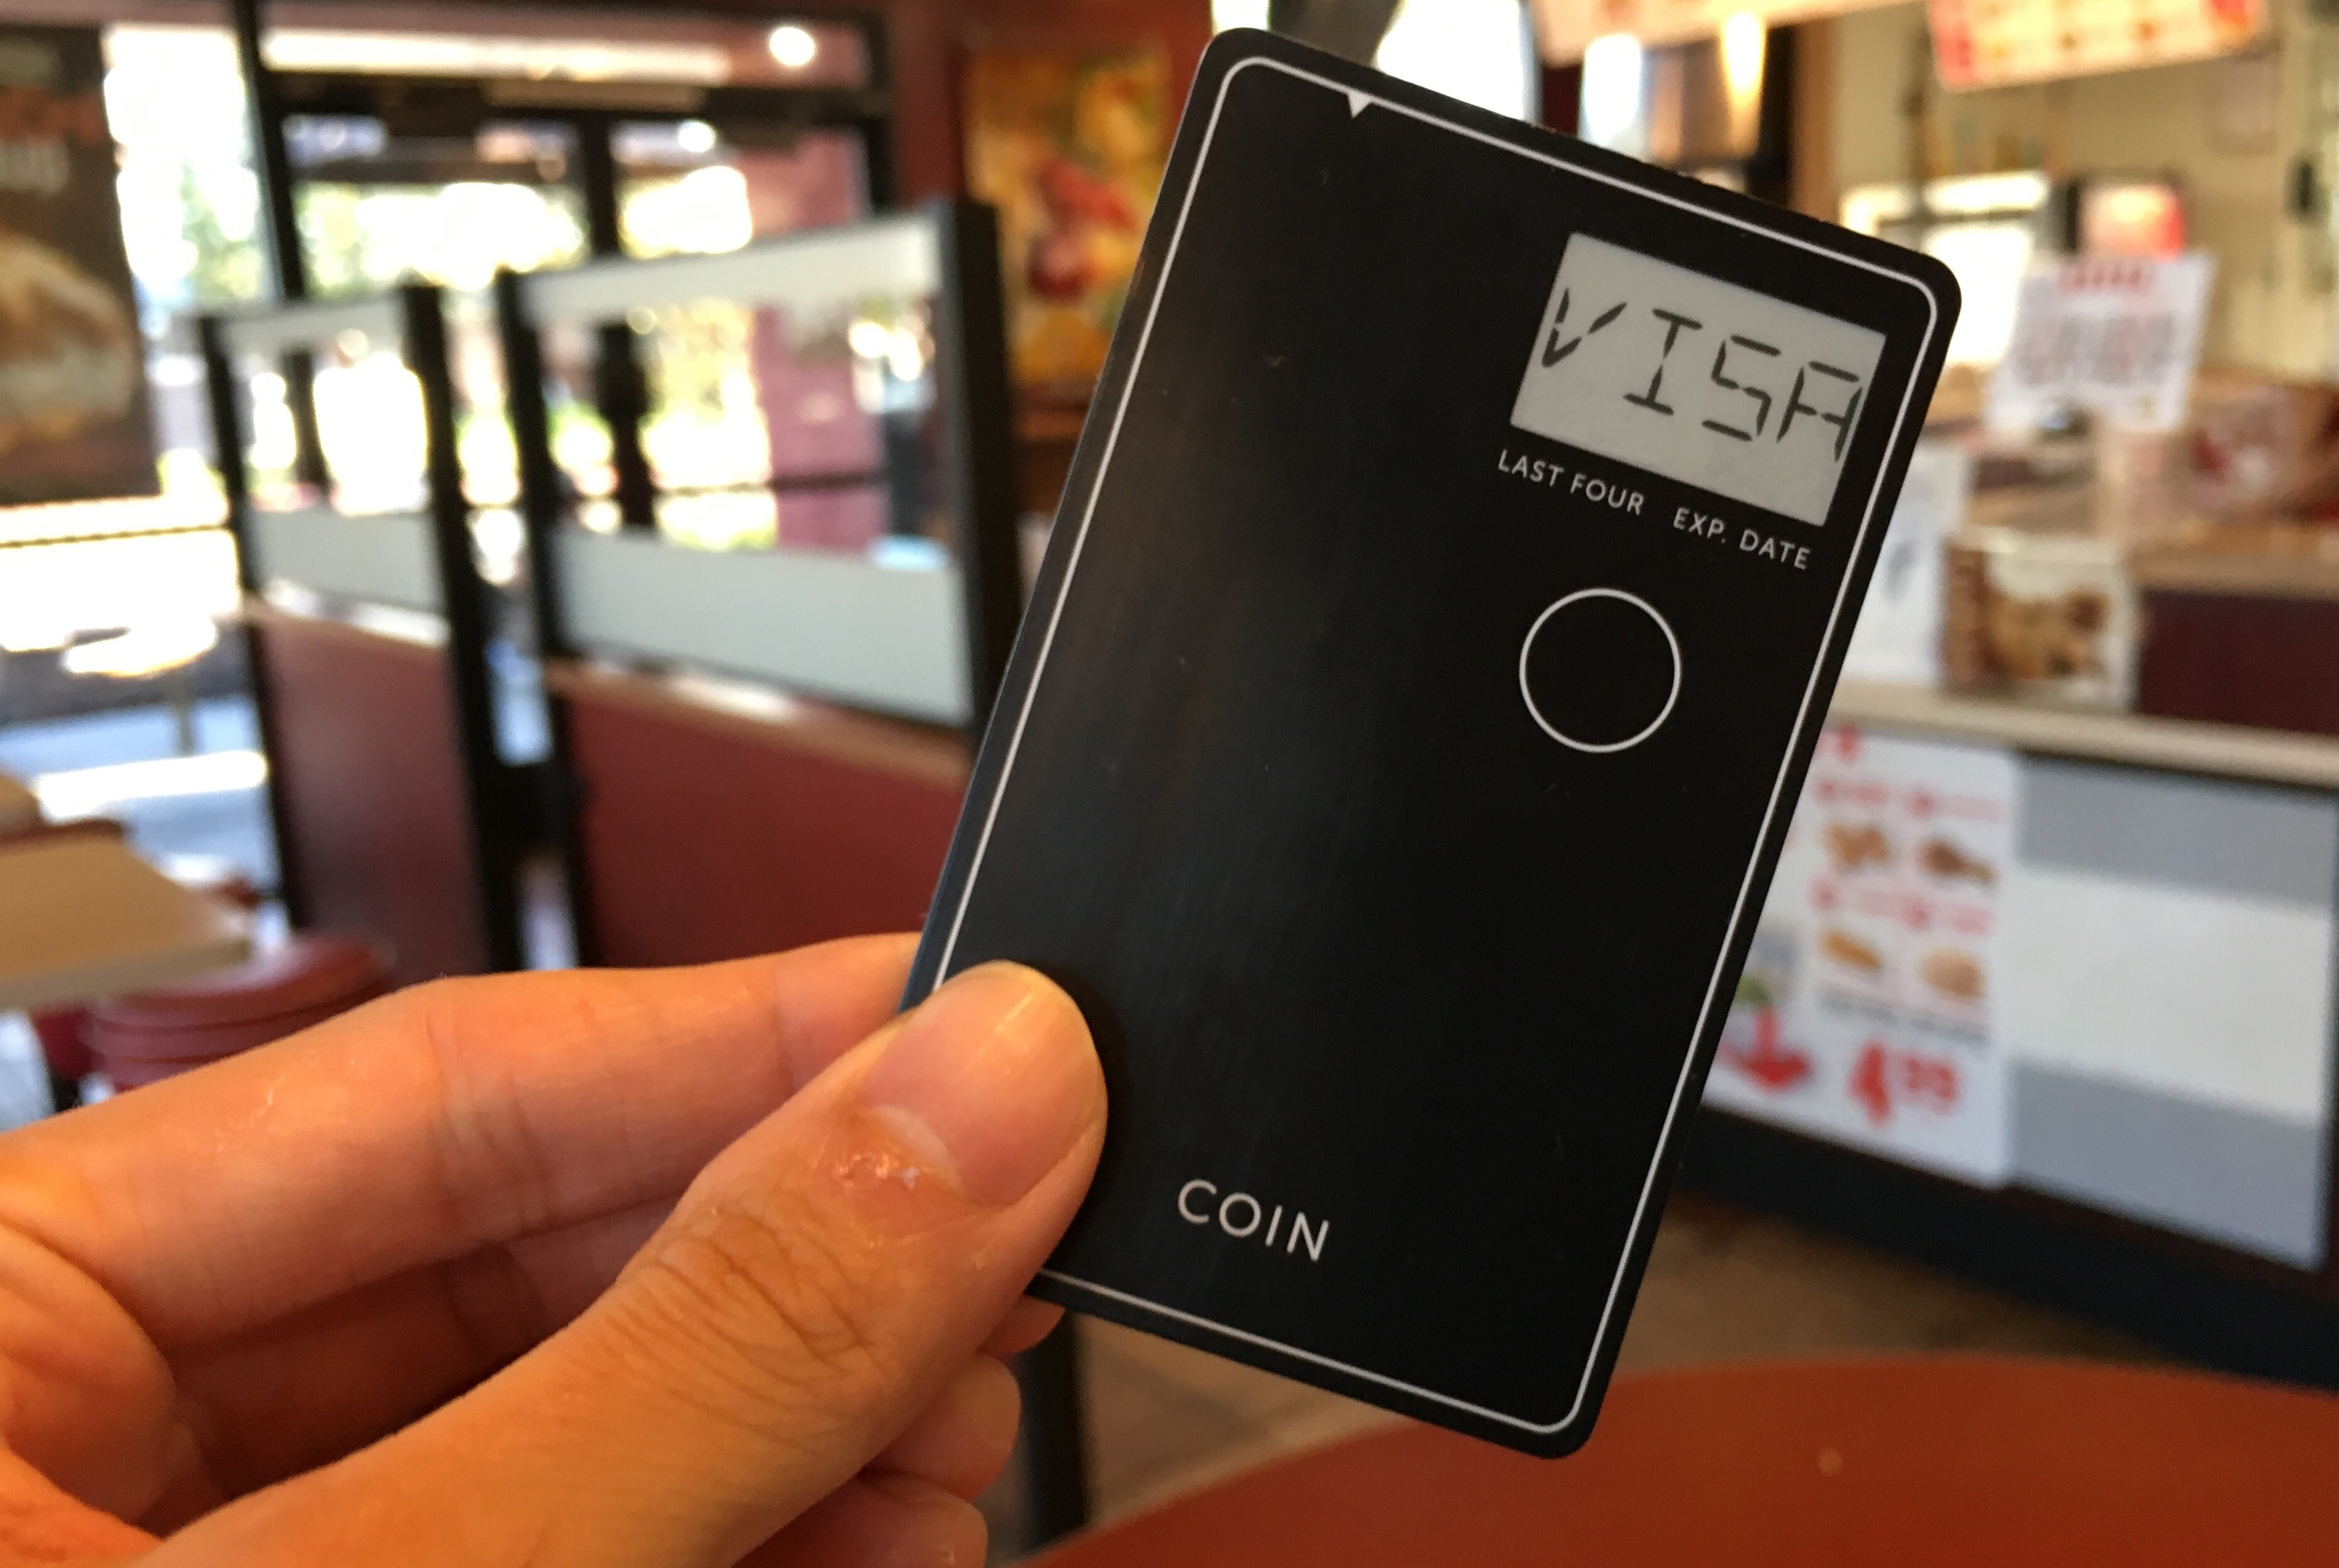 Can Coin fulfill its promise to replace all of the magnetic cards in my wallet? Let's find out.